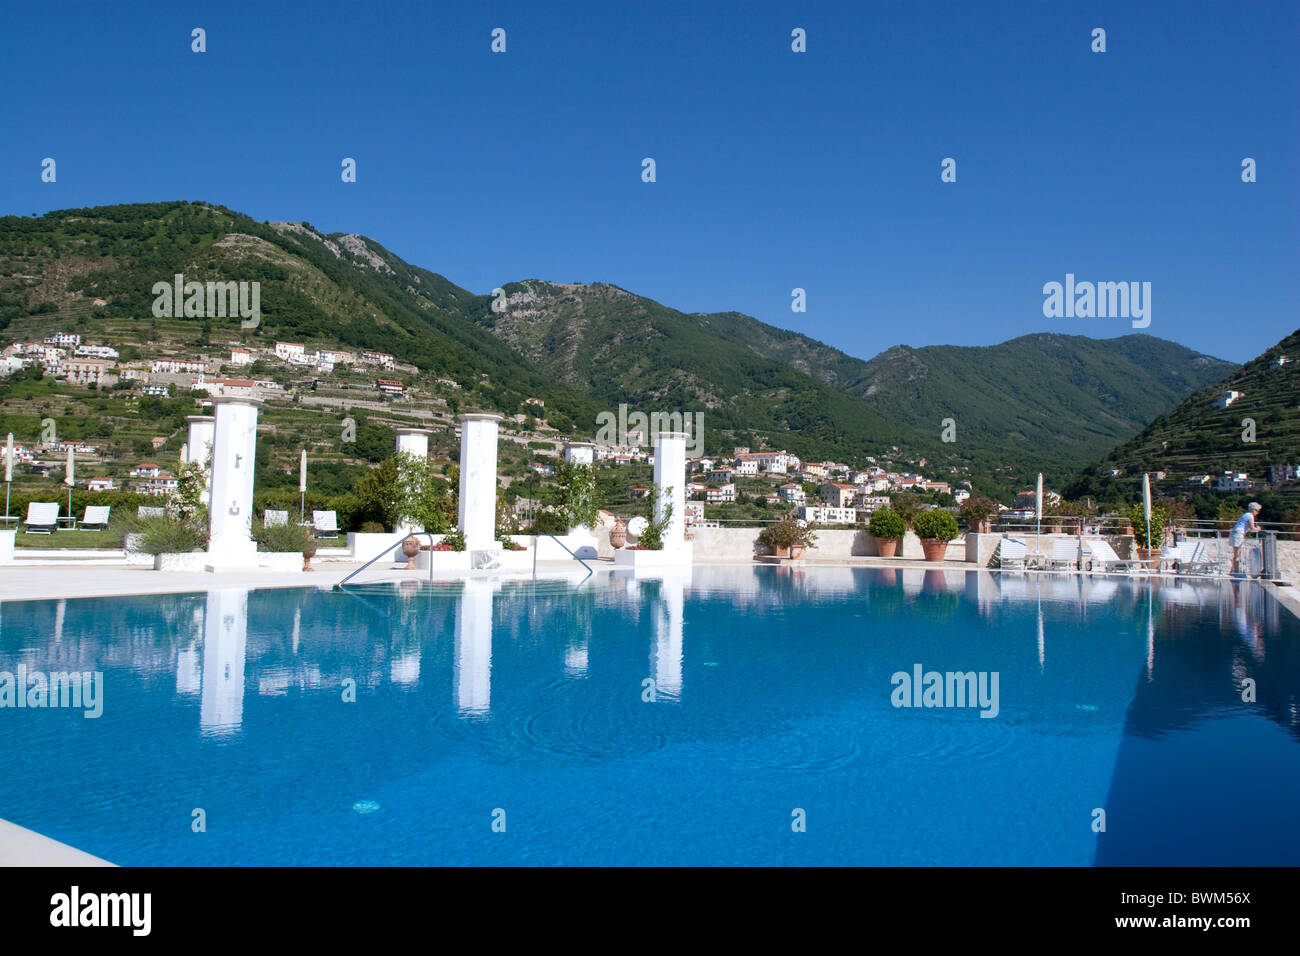 Ravello caruso luxury hotel pool amalfi coast sun luxury for Hotels in ravello with swimming pool